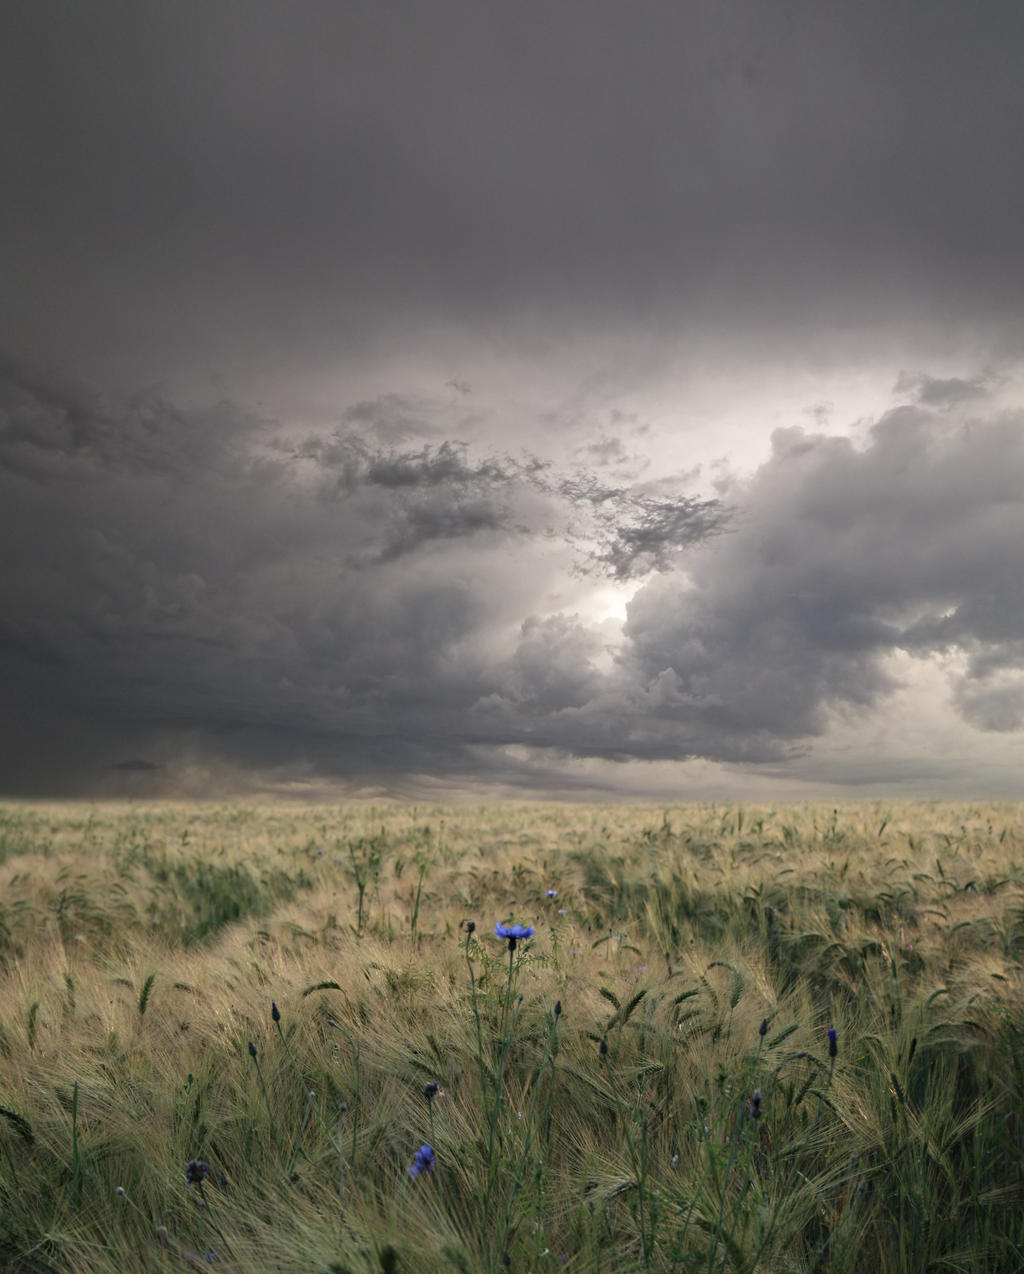 The Field Background by Frederic-Lievre